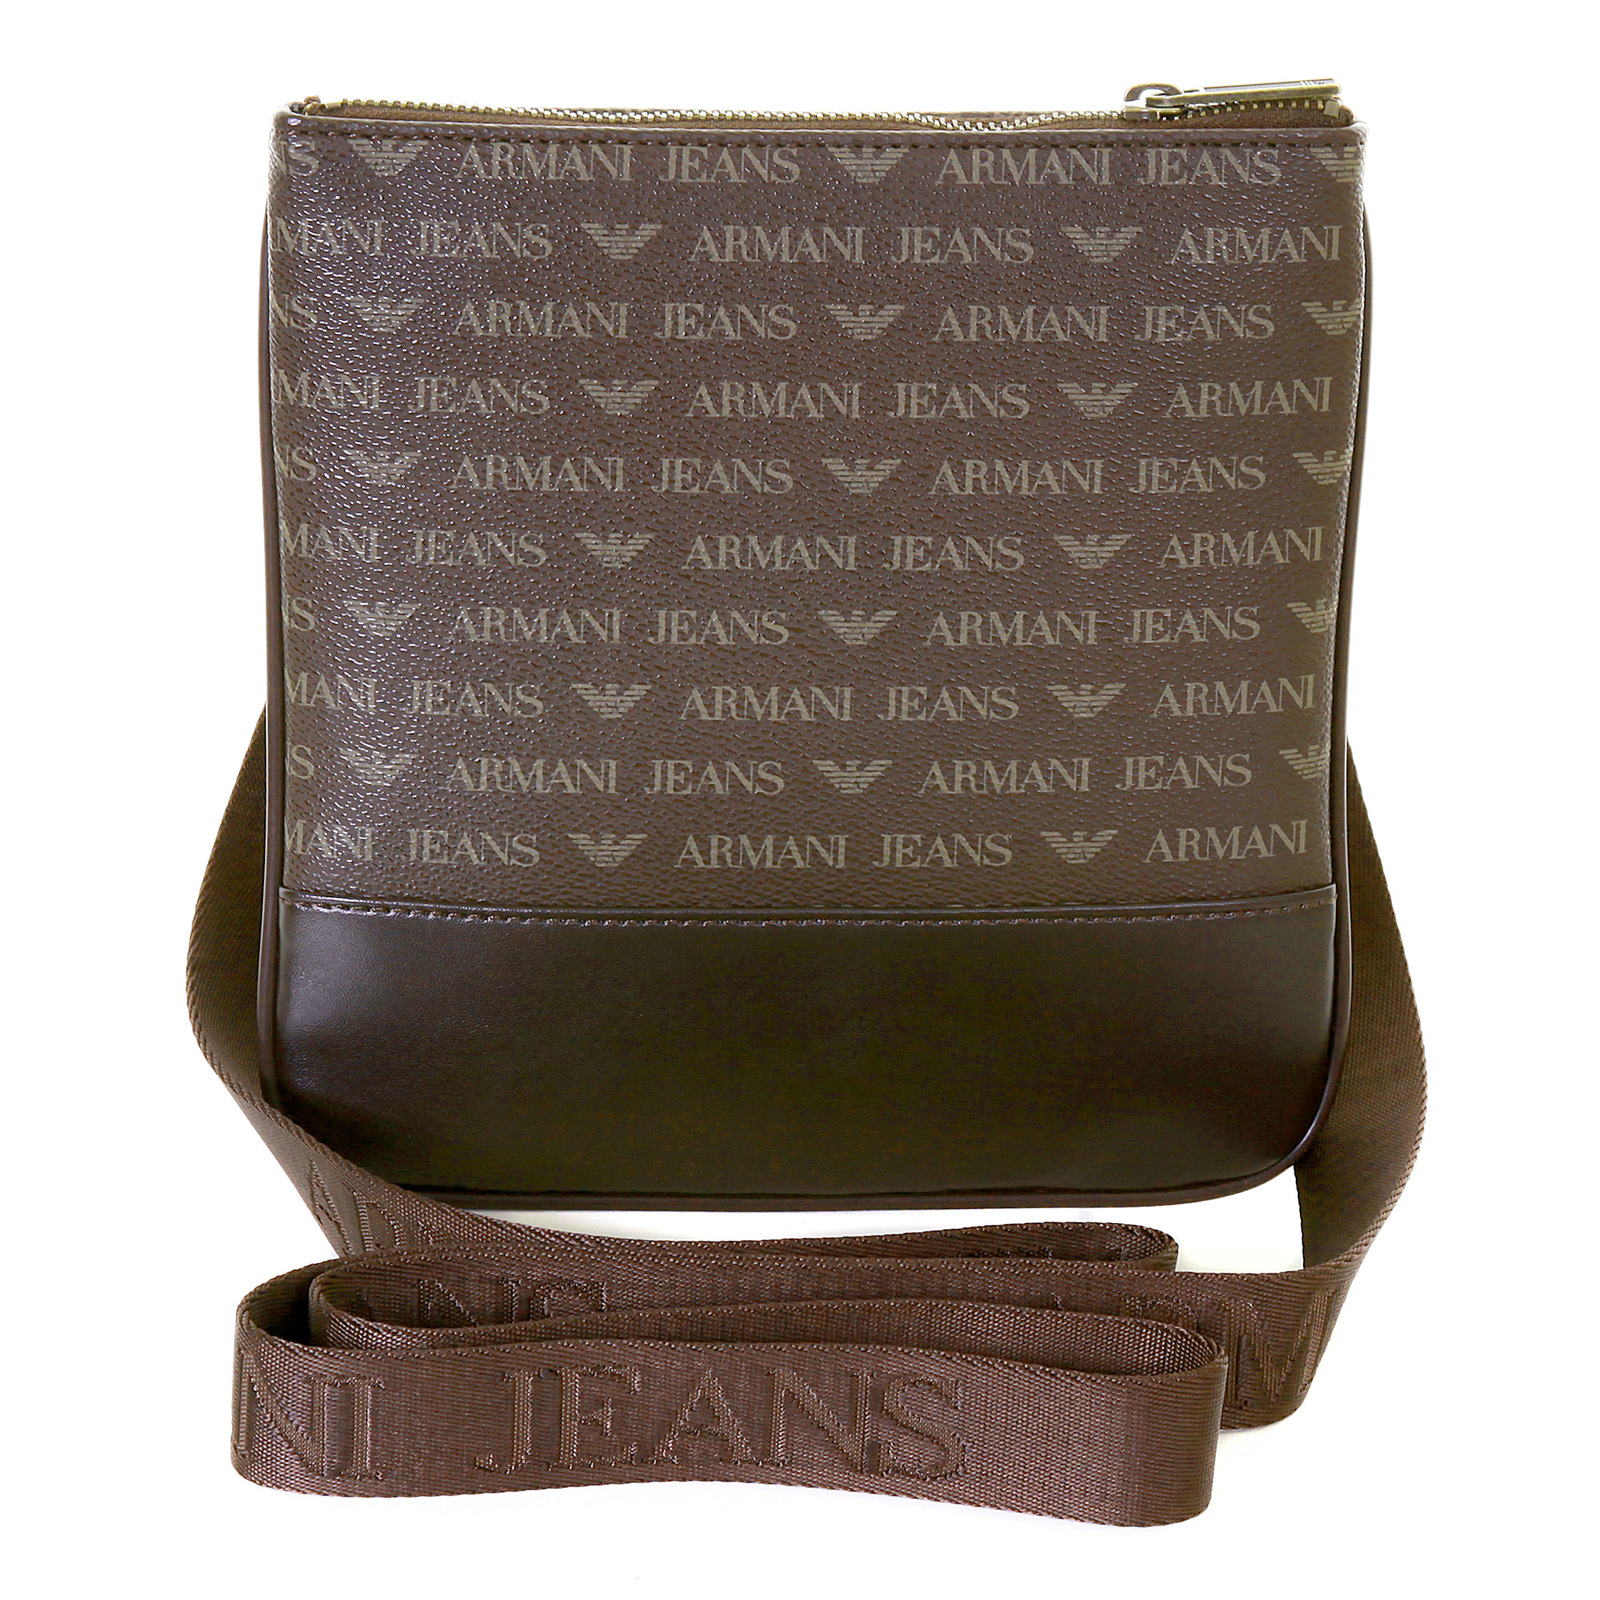 Armani Jeans mens brown logo small messenger bag AJM2472 at Togged Clothing bea436744e80f